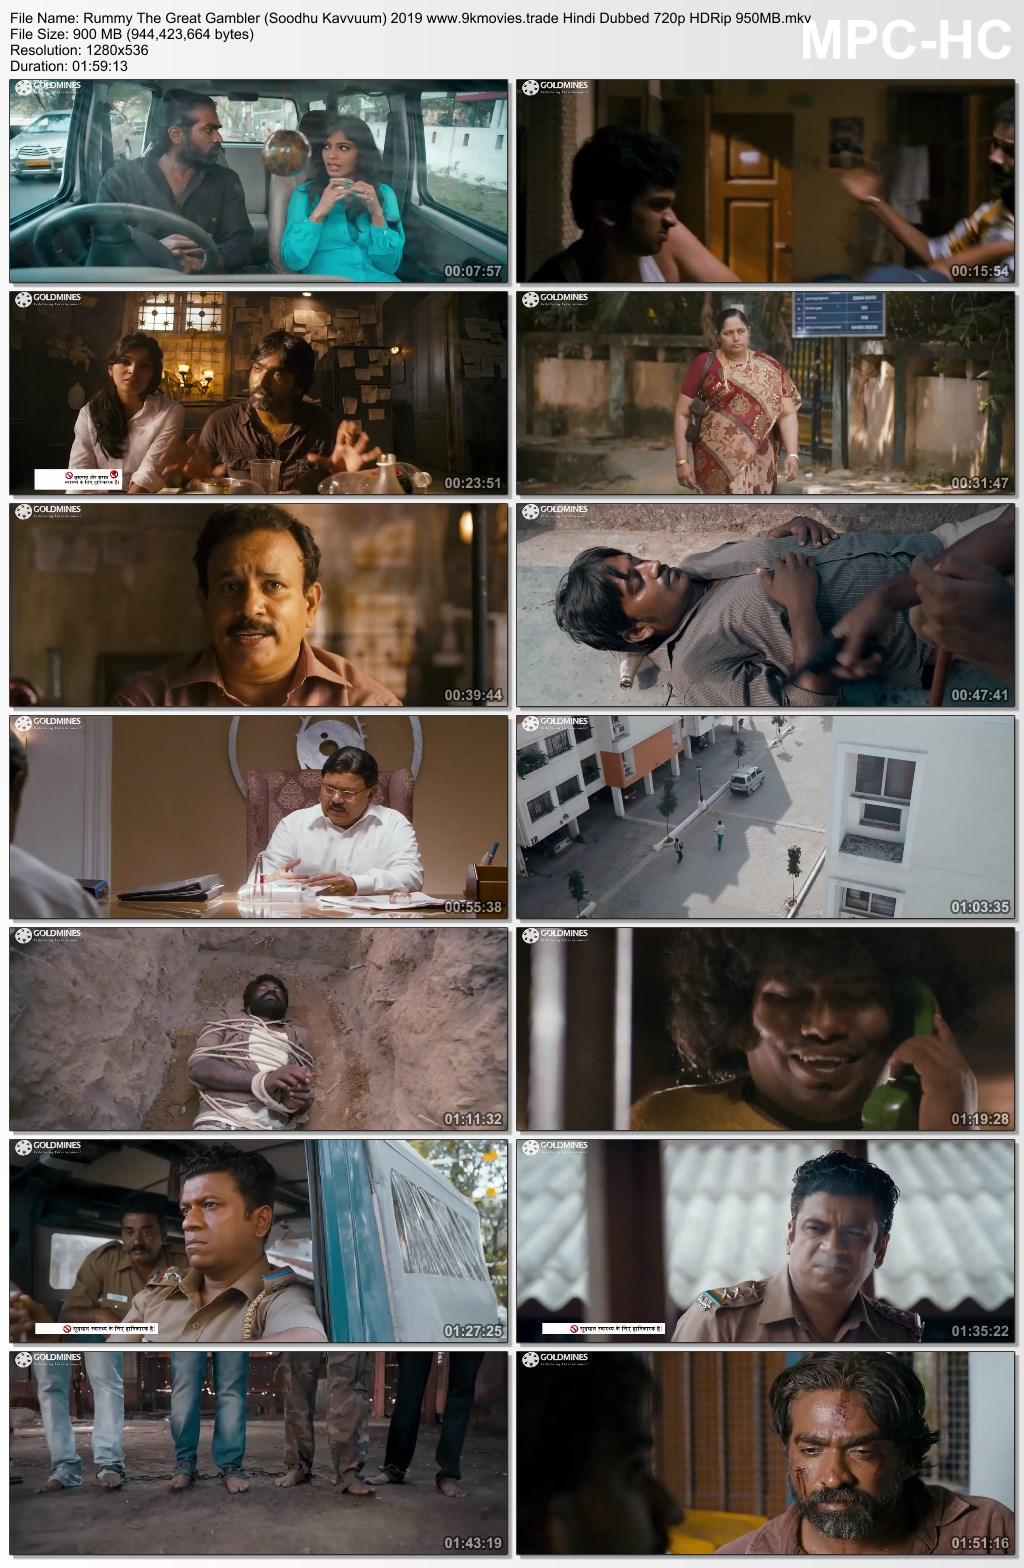 Rummy The Great Gambler (Soodhu Kavvuum) 2019 Hindi Dubbed 720p HDRip 950MB Download